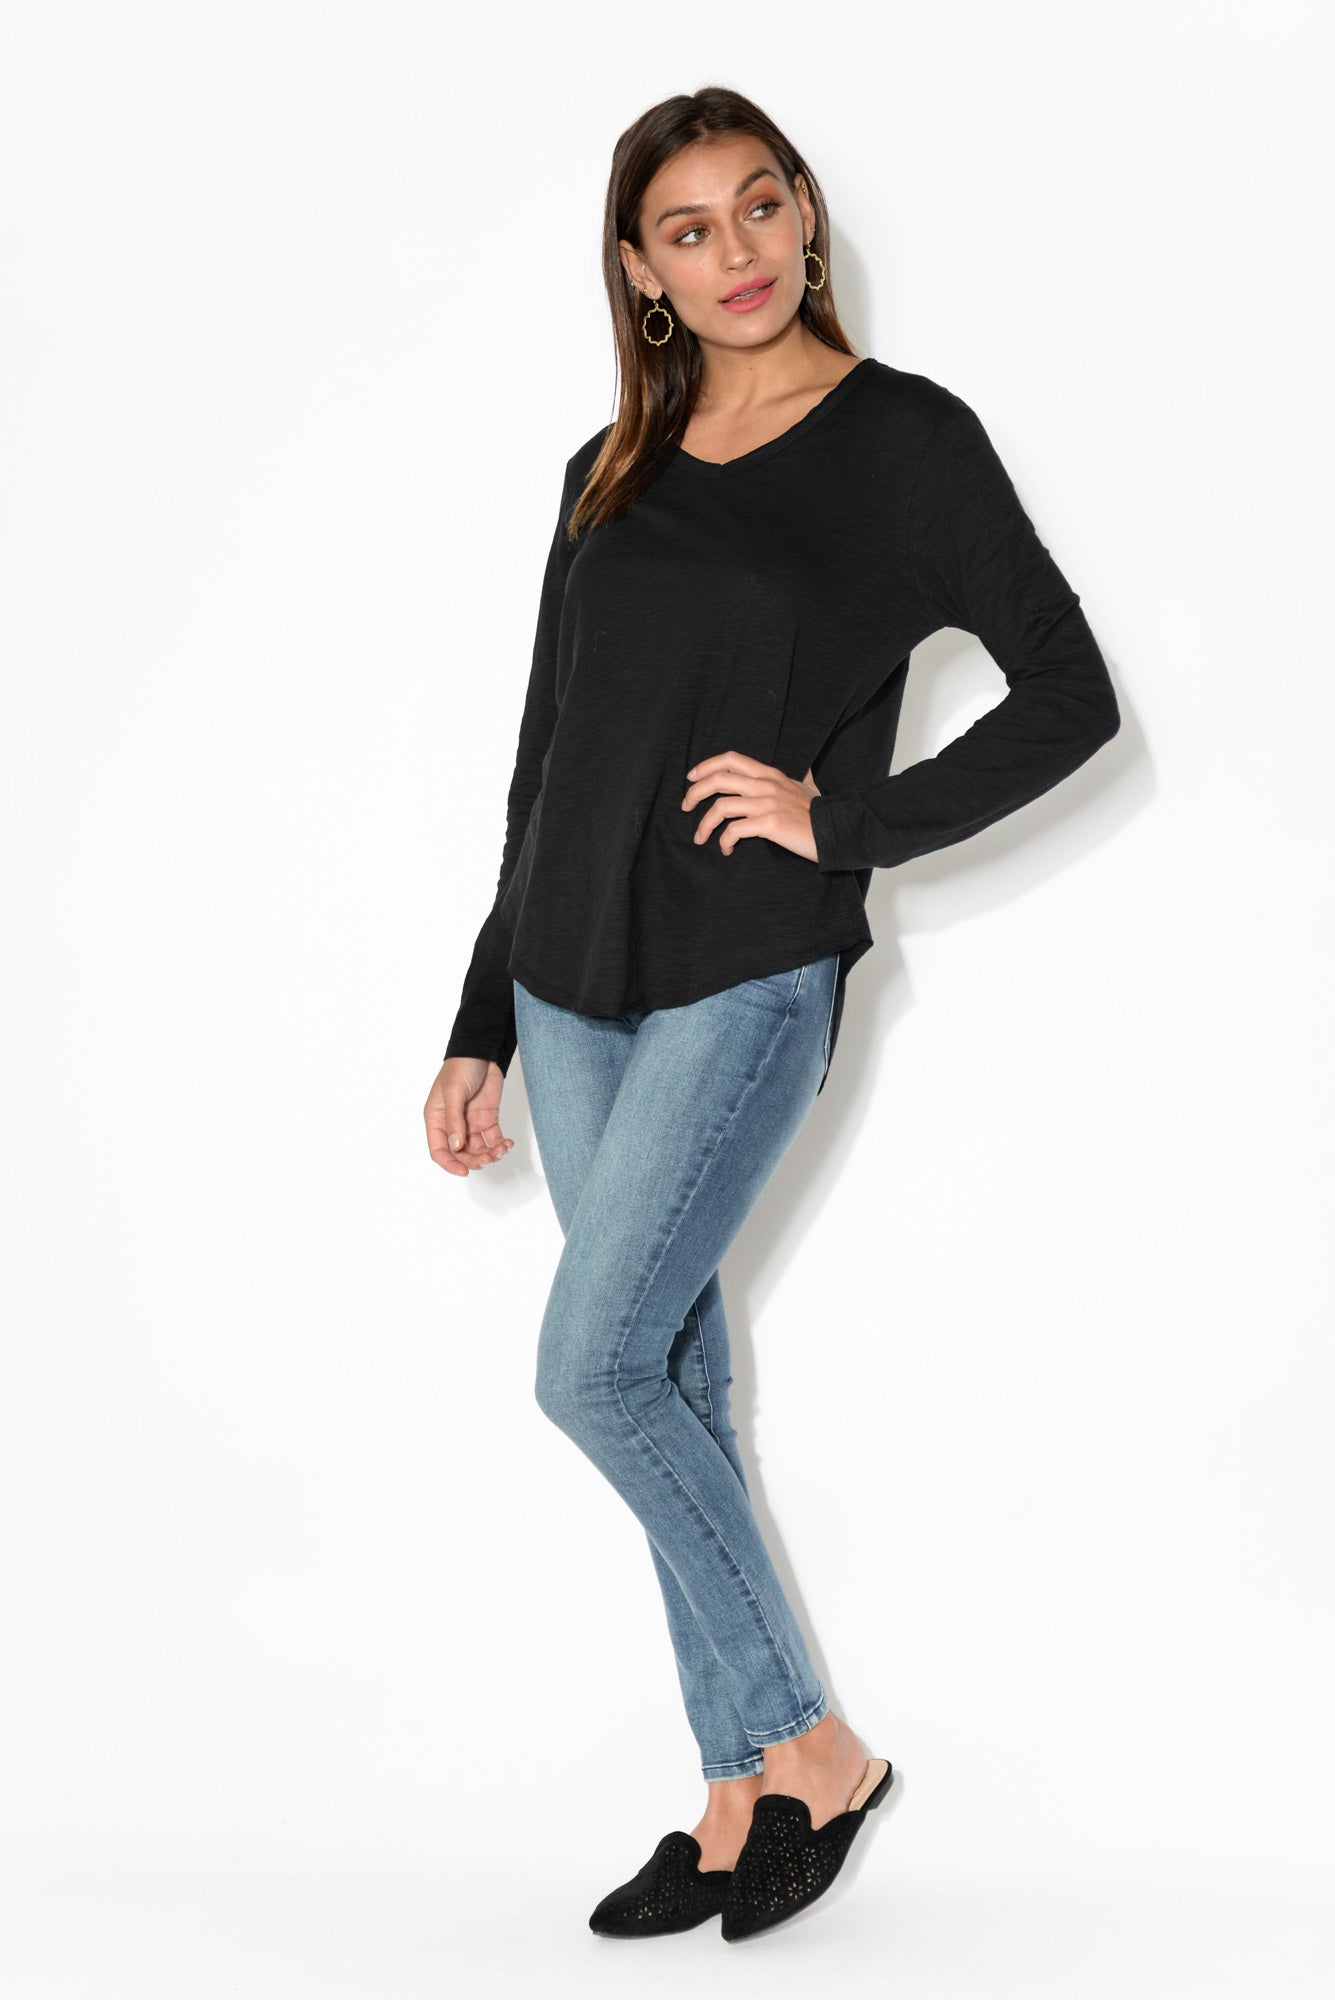 Portsea Black Cotton Long Sleeve Top